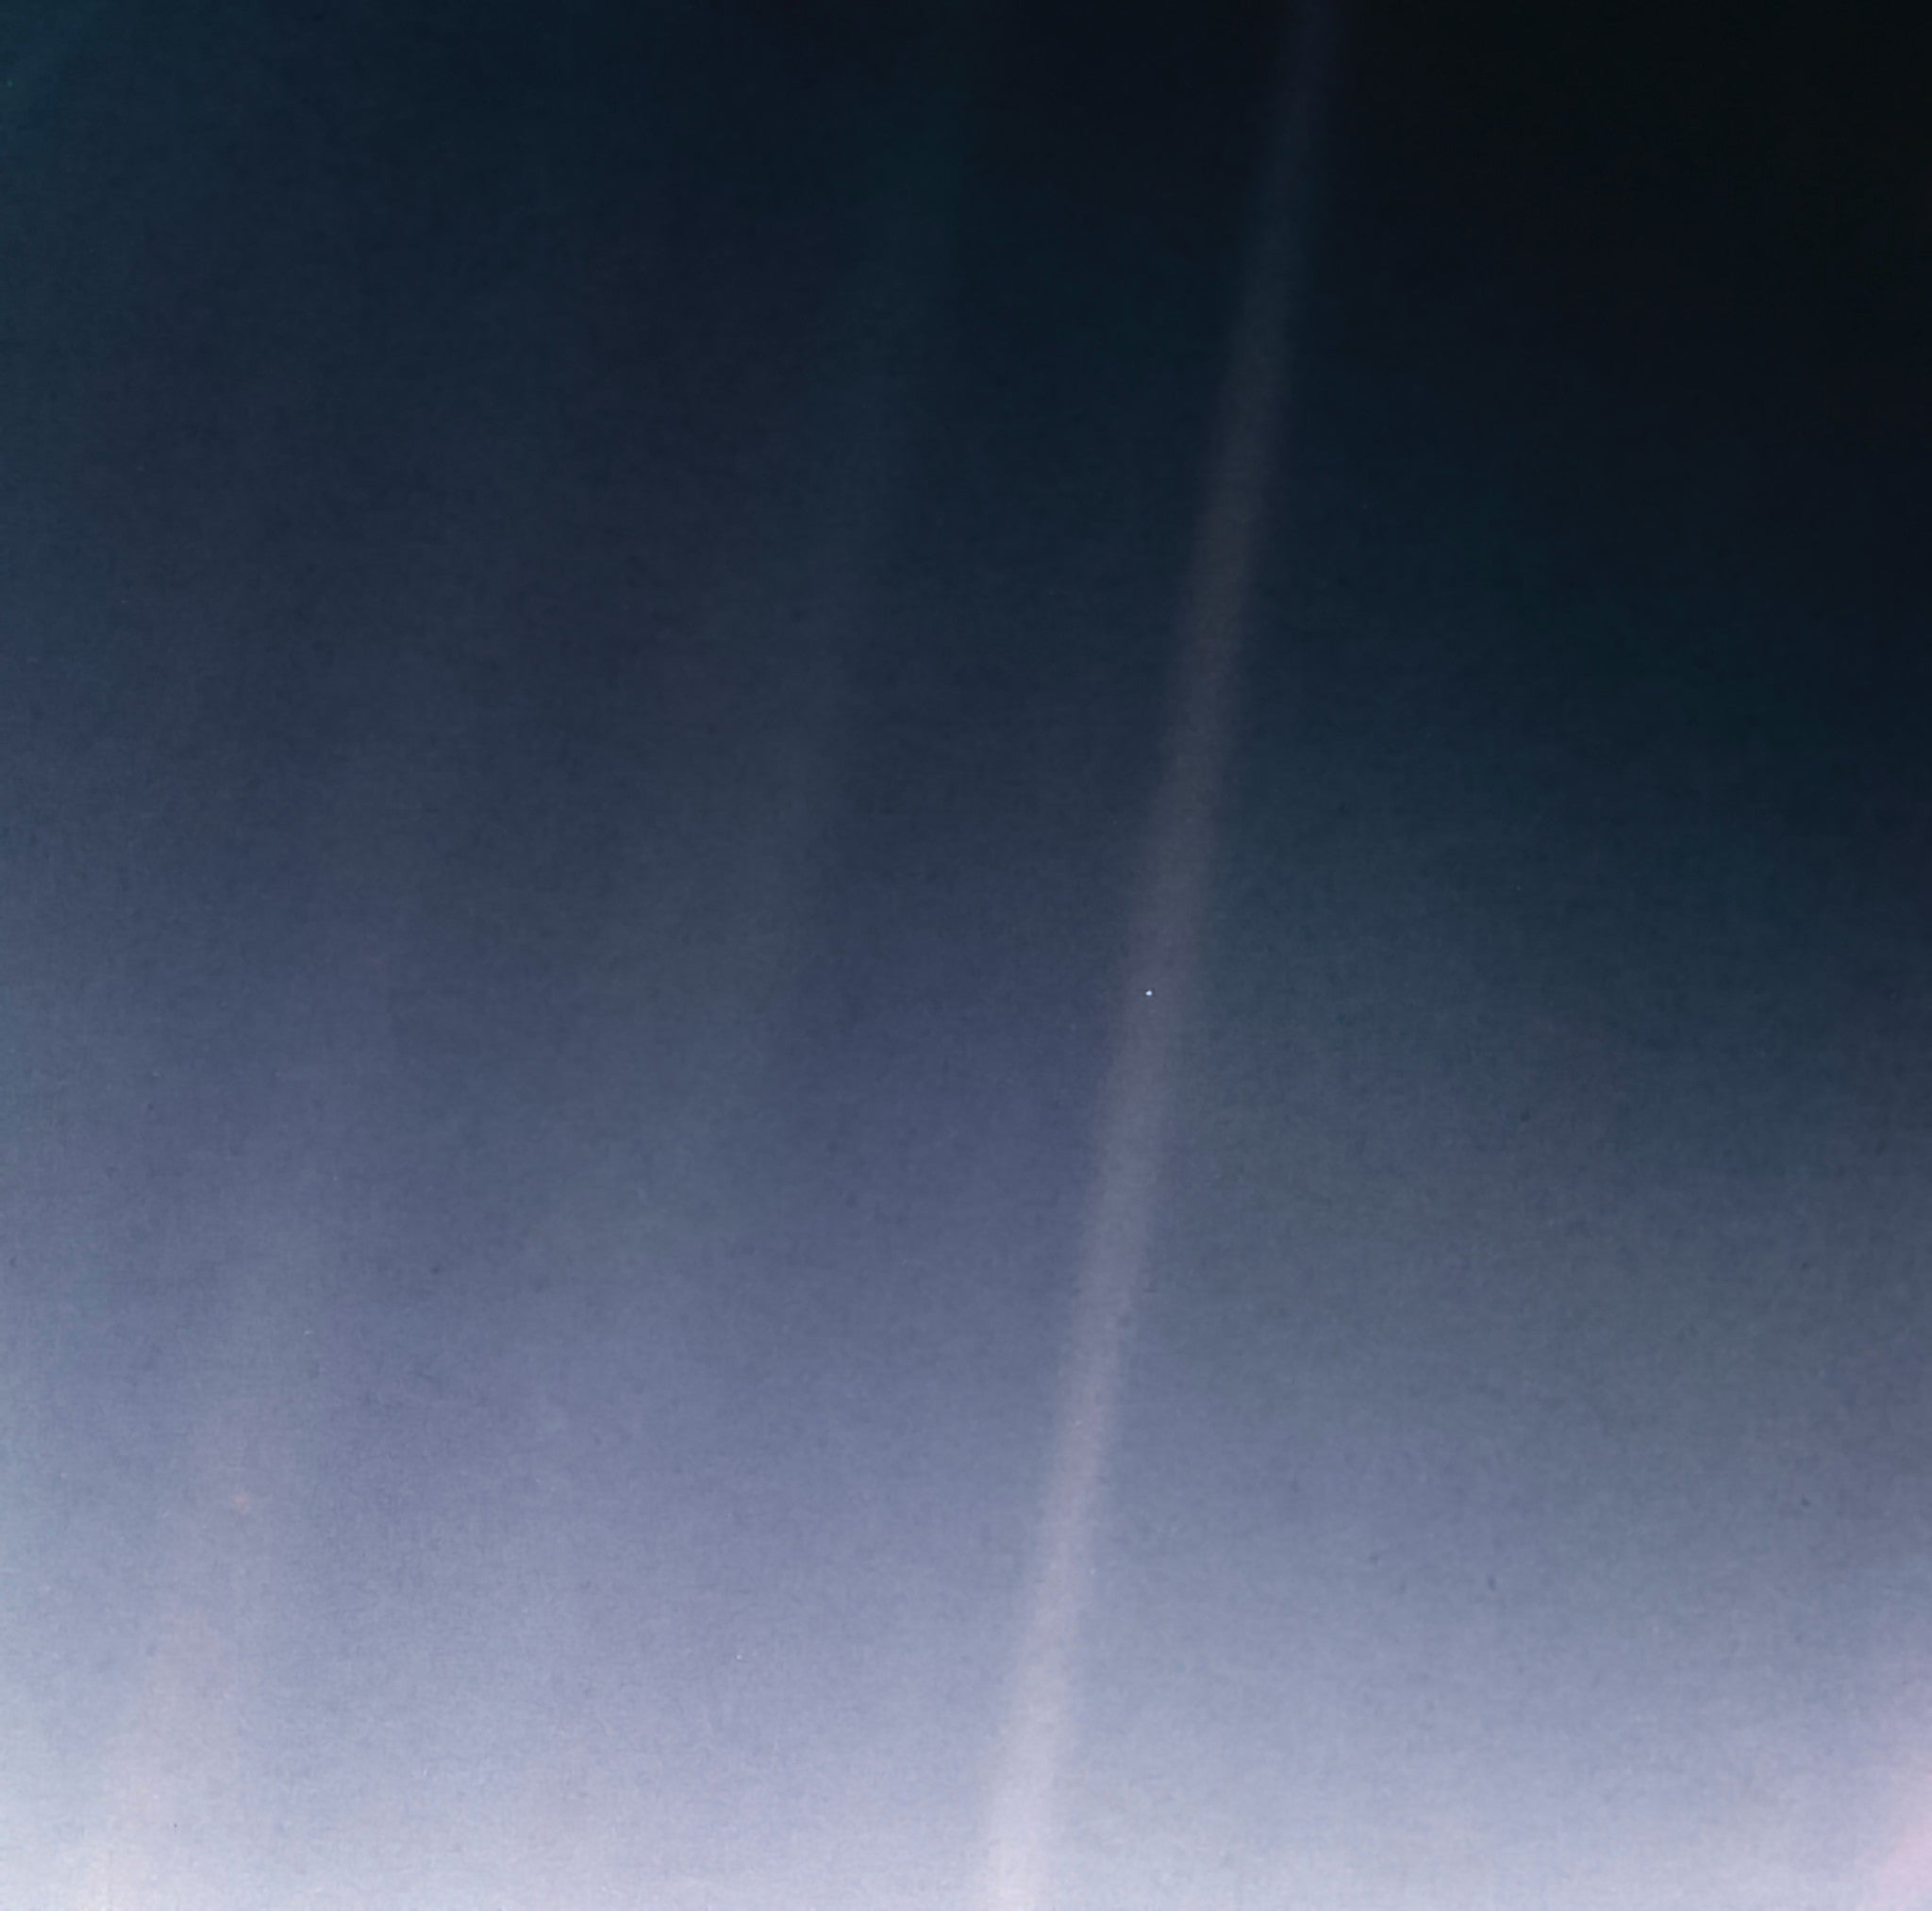 Pale Blue Dot from NASA's Voyager 1